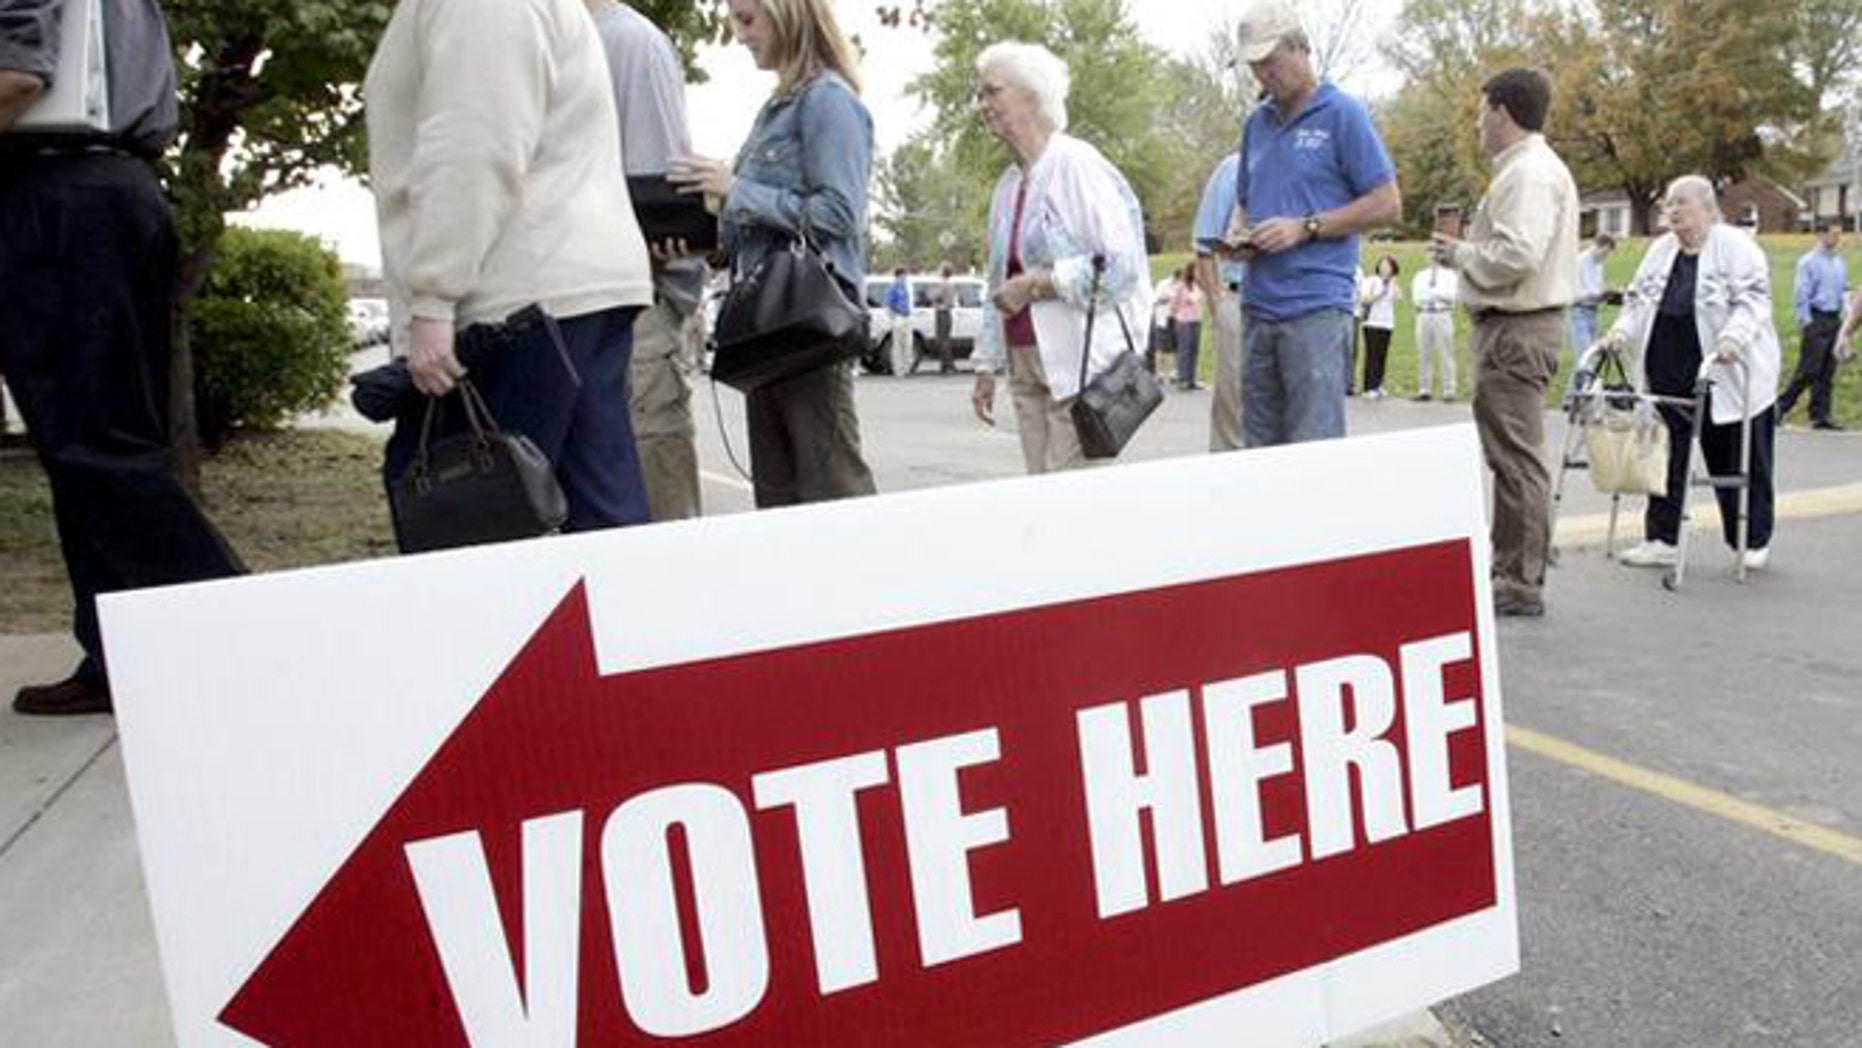 FILE: 2004: People line up to vote at Crieve Hall Elementary School in Nashville, Tenn.